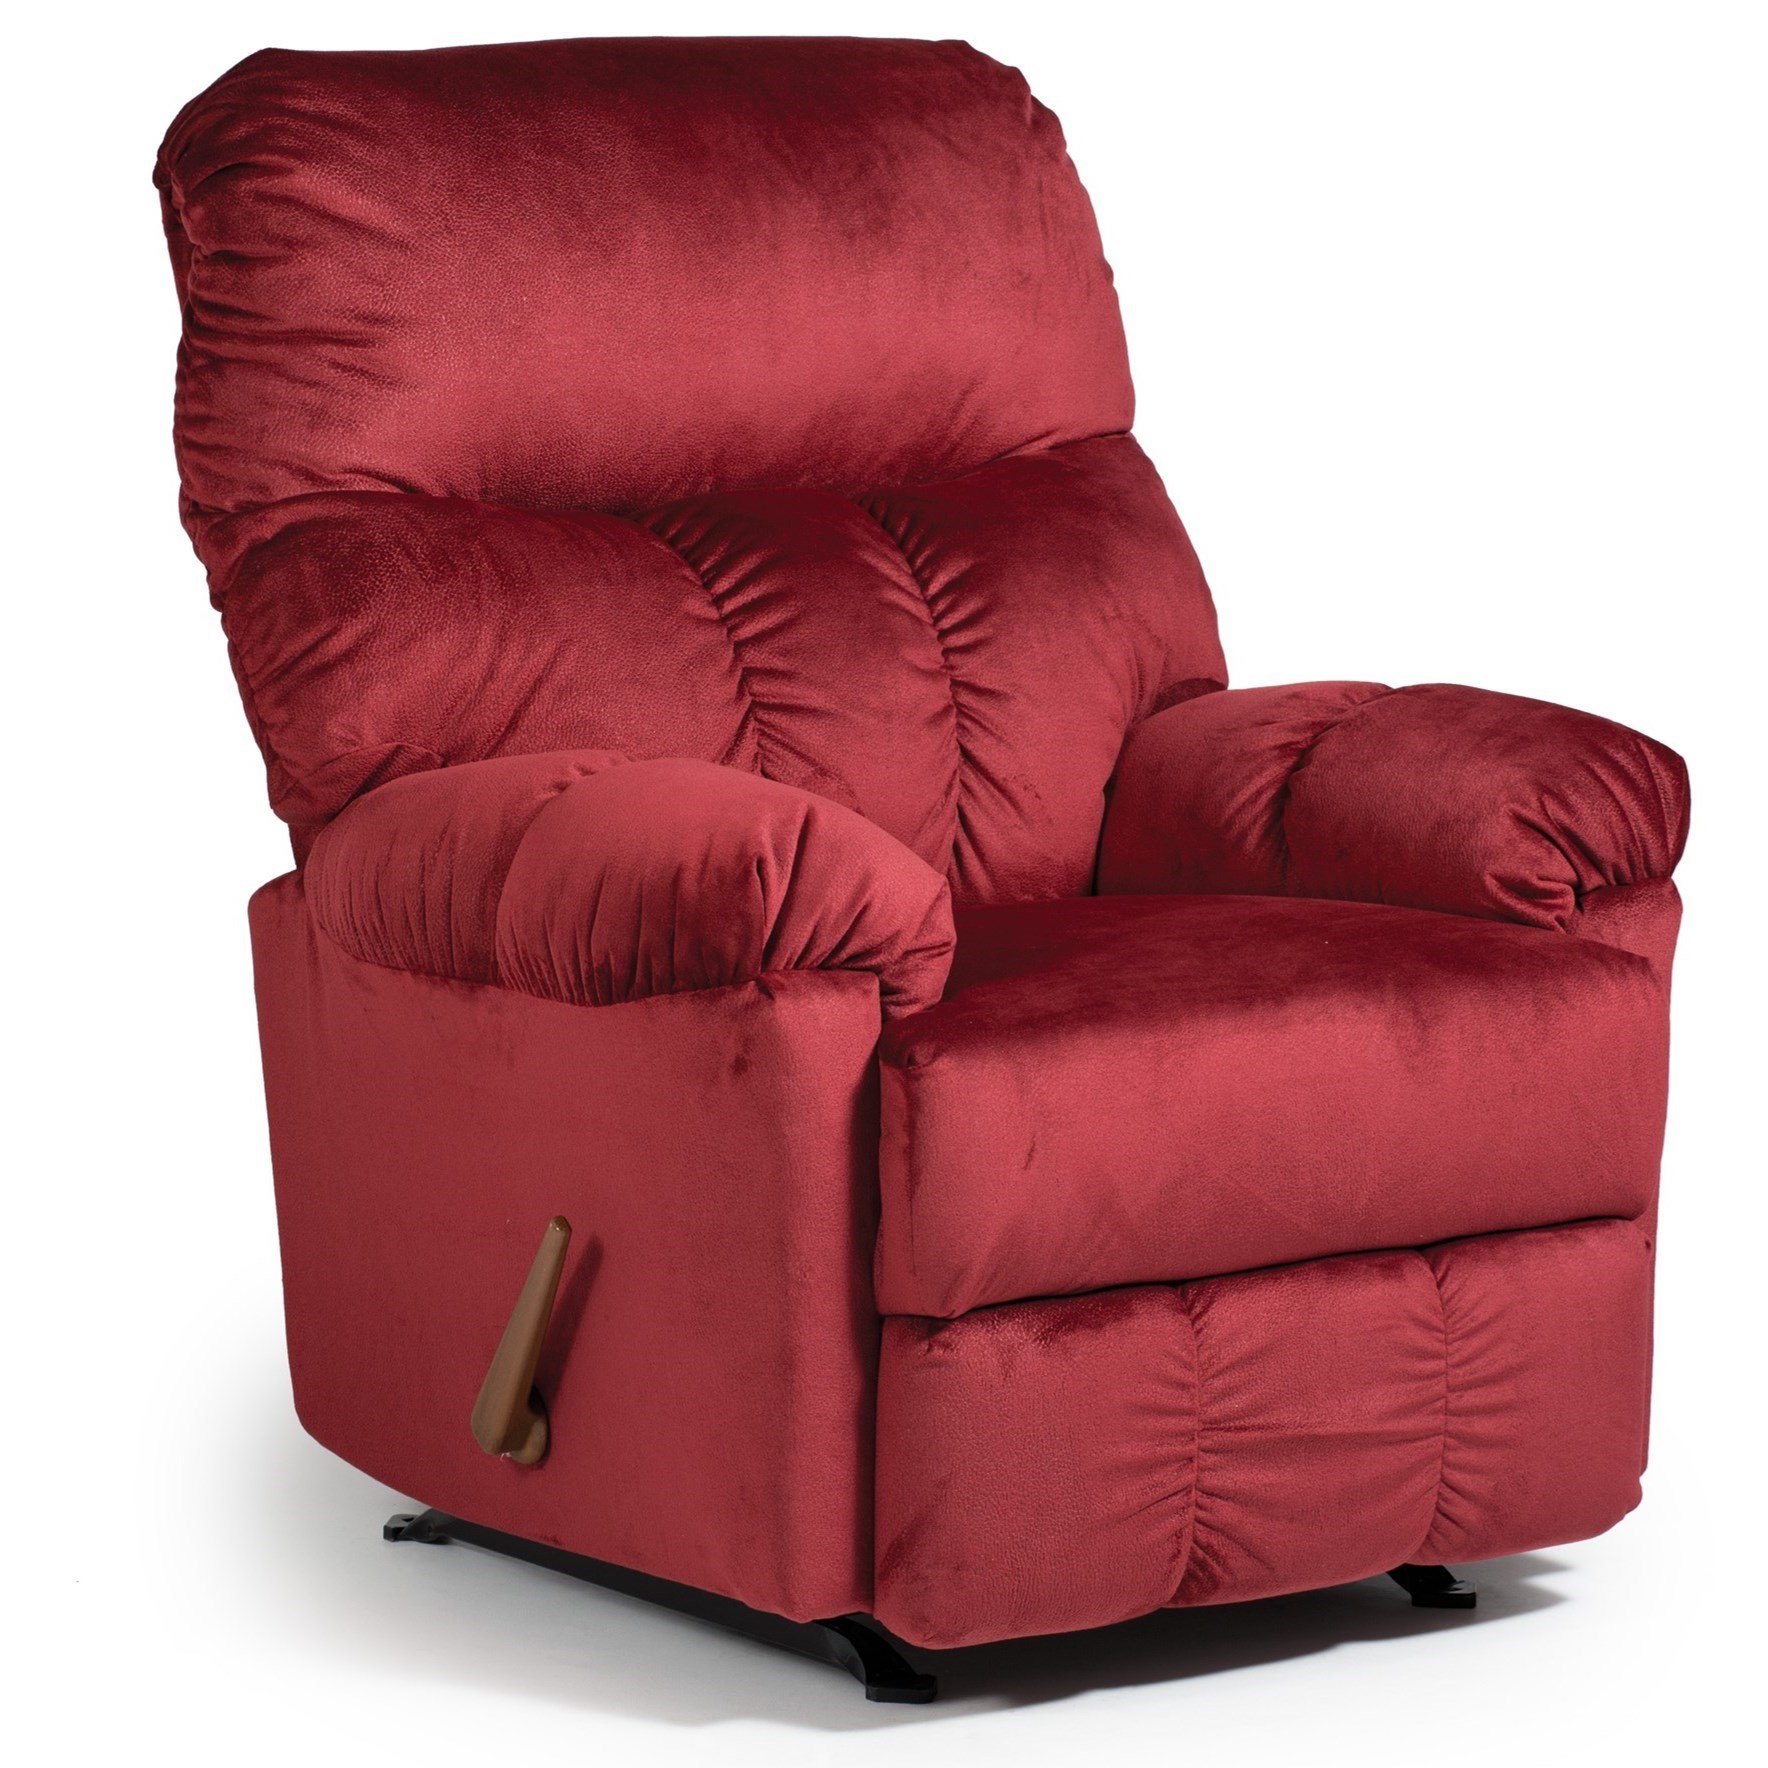 Ares Ares Recliner by Best Home Furnishings at Lapeer Furniture & Mattress Center